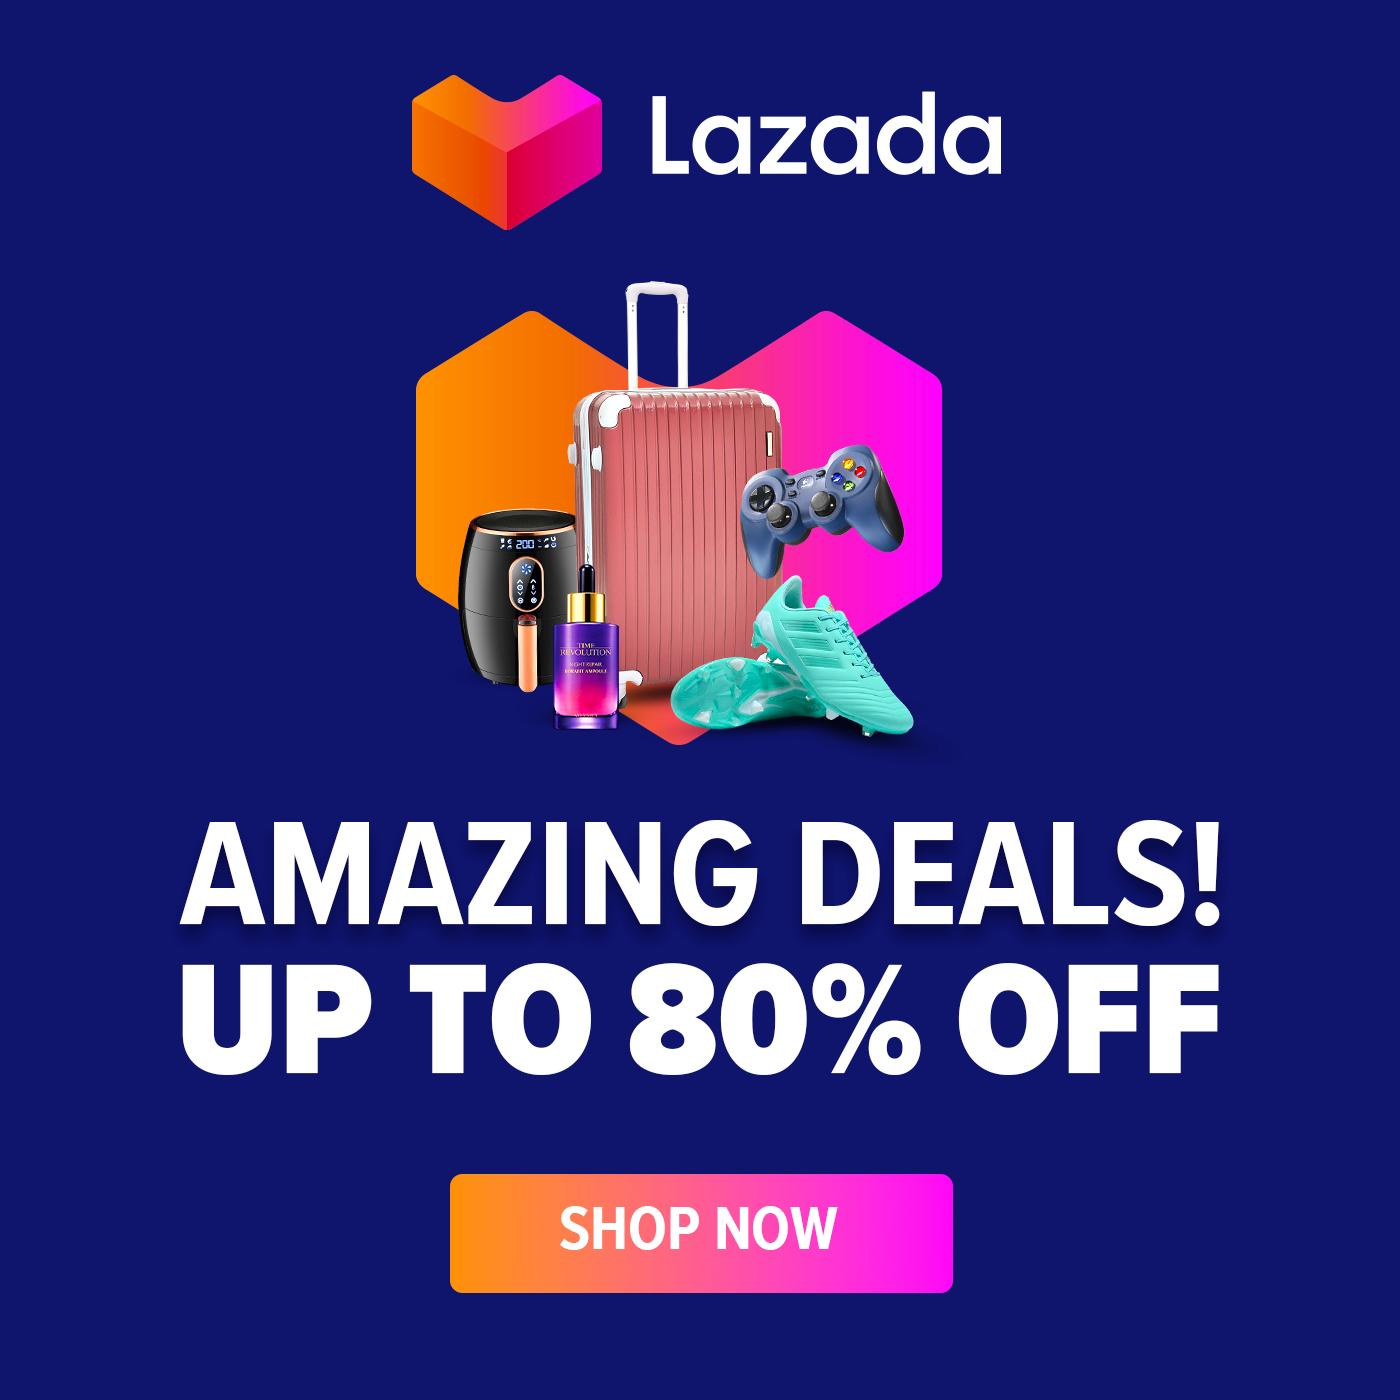 Get Your Lazada App Voucher 250 Today! | Lazada Voucher Code